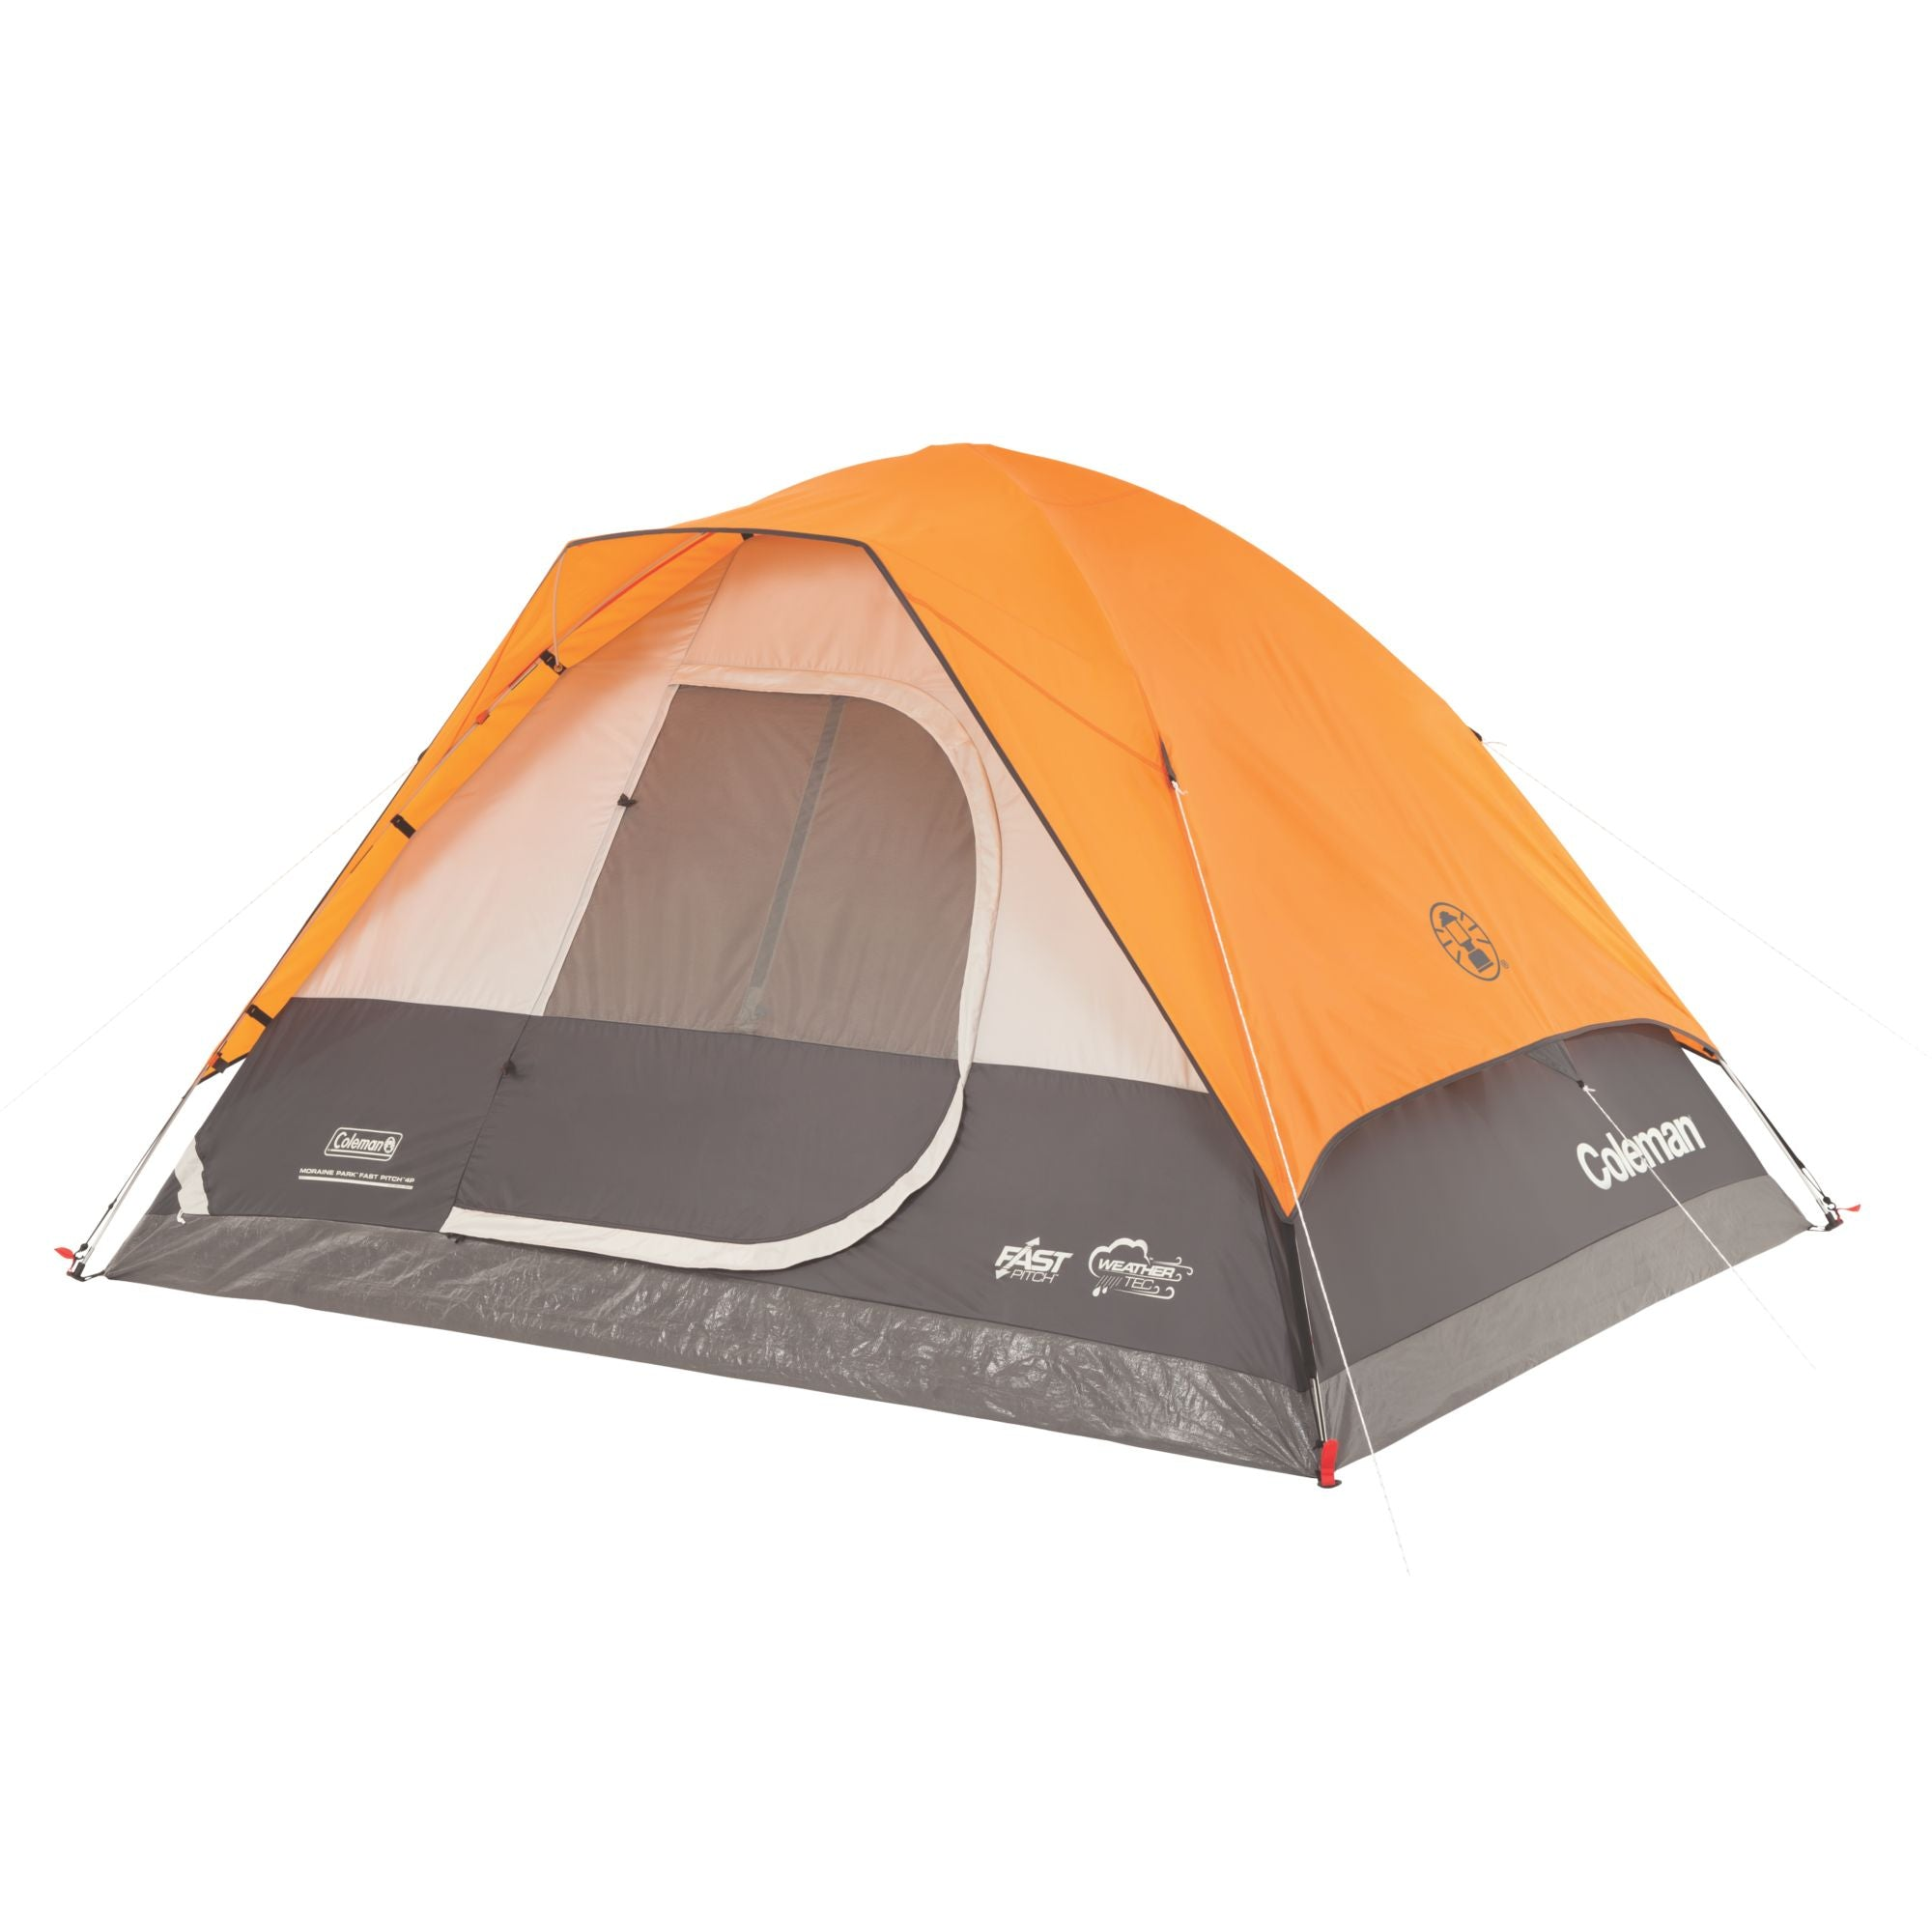 Coleman Moraine Park Fast Pitch 4 Person Dome Tent - Texas Adventure and Survival